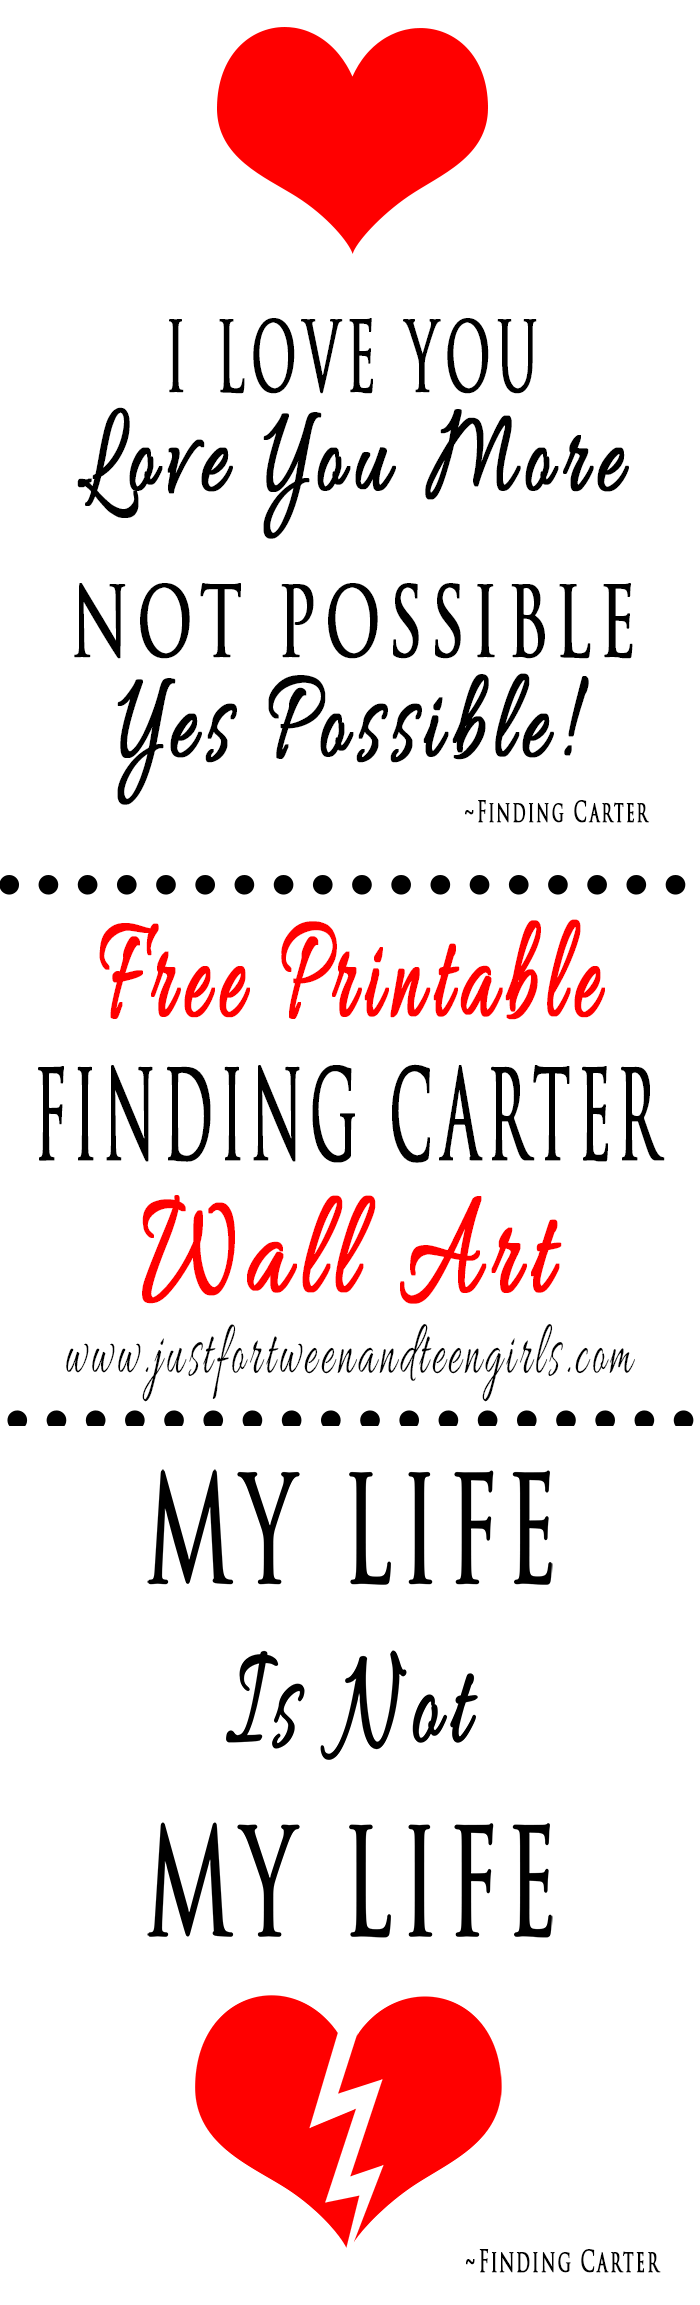 "Finding Carter ""Love You More"" And ""My Life Is Not My Life"" Quotes - Free Printable Wall Art"